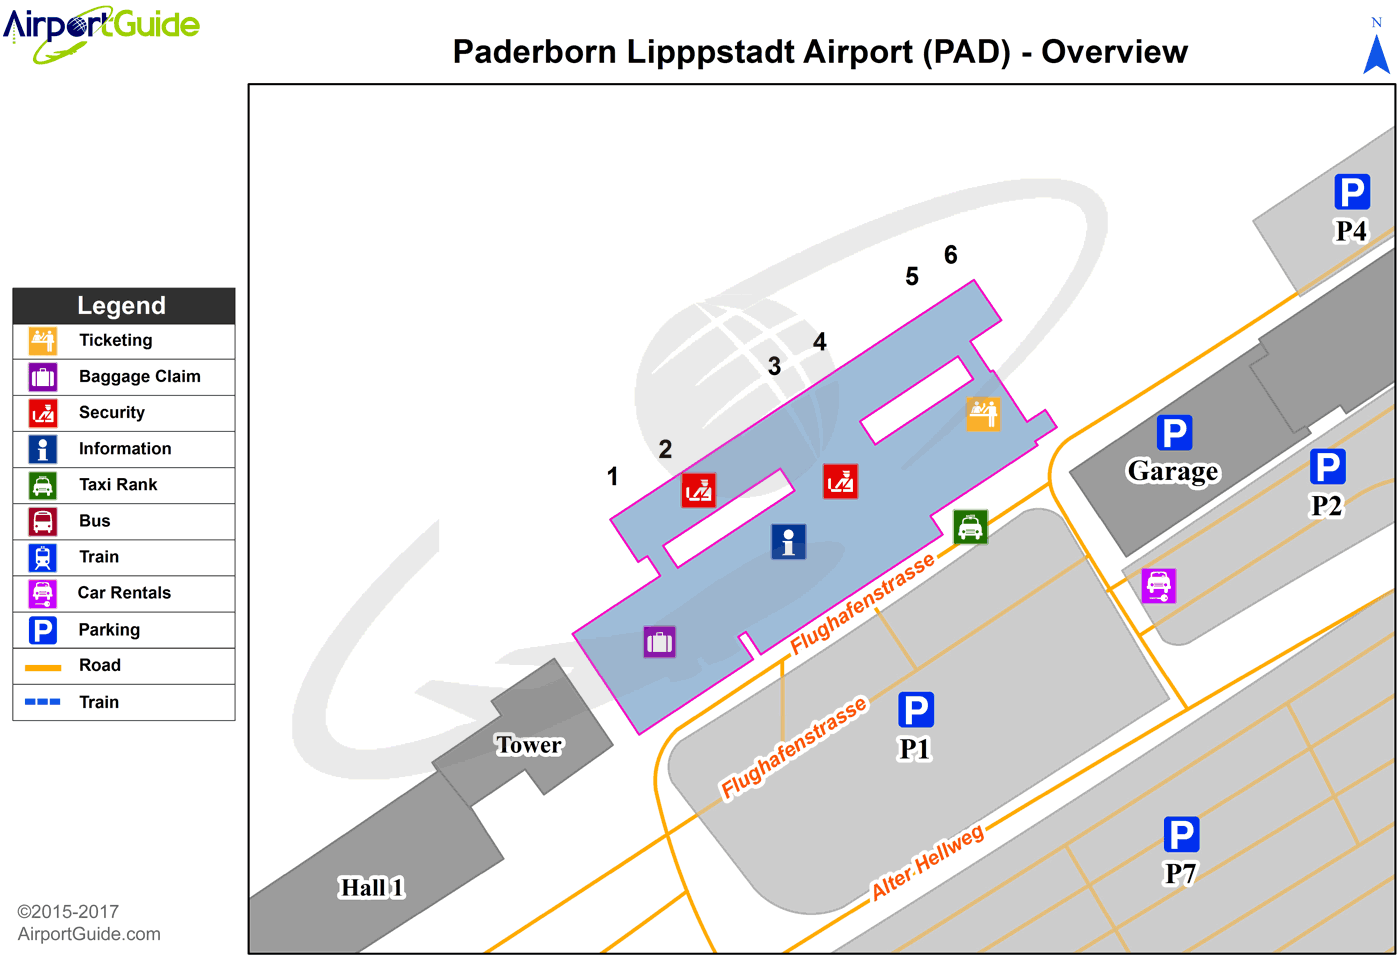 Paderborn - Paderborn Lippstadt (PAD) Airport Terminal Map - Overview